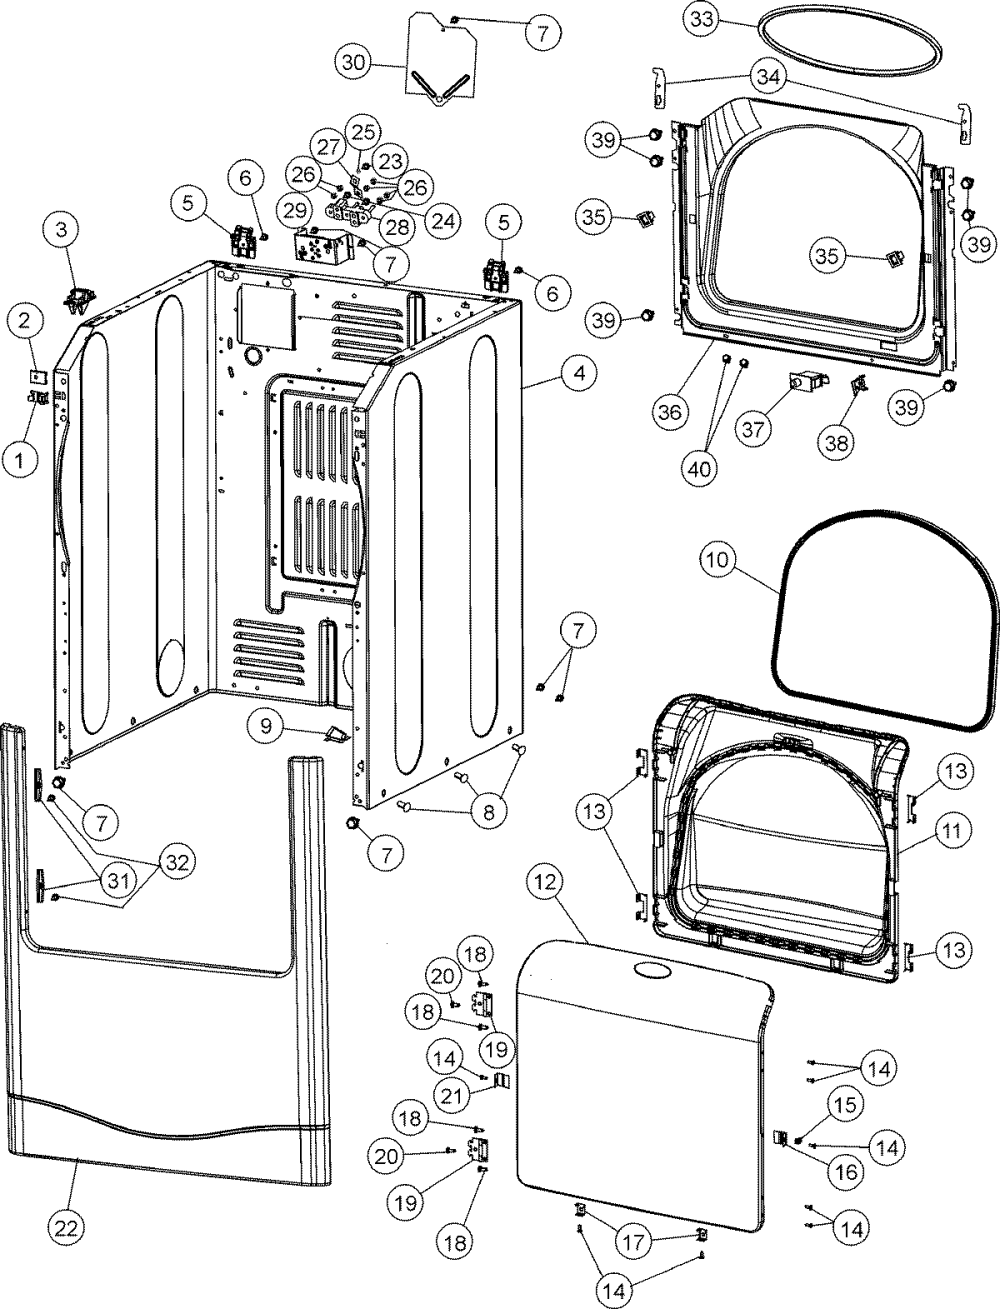 medium resolution of photos of parts for a maytag dryer